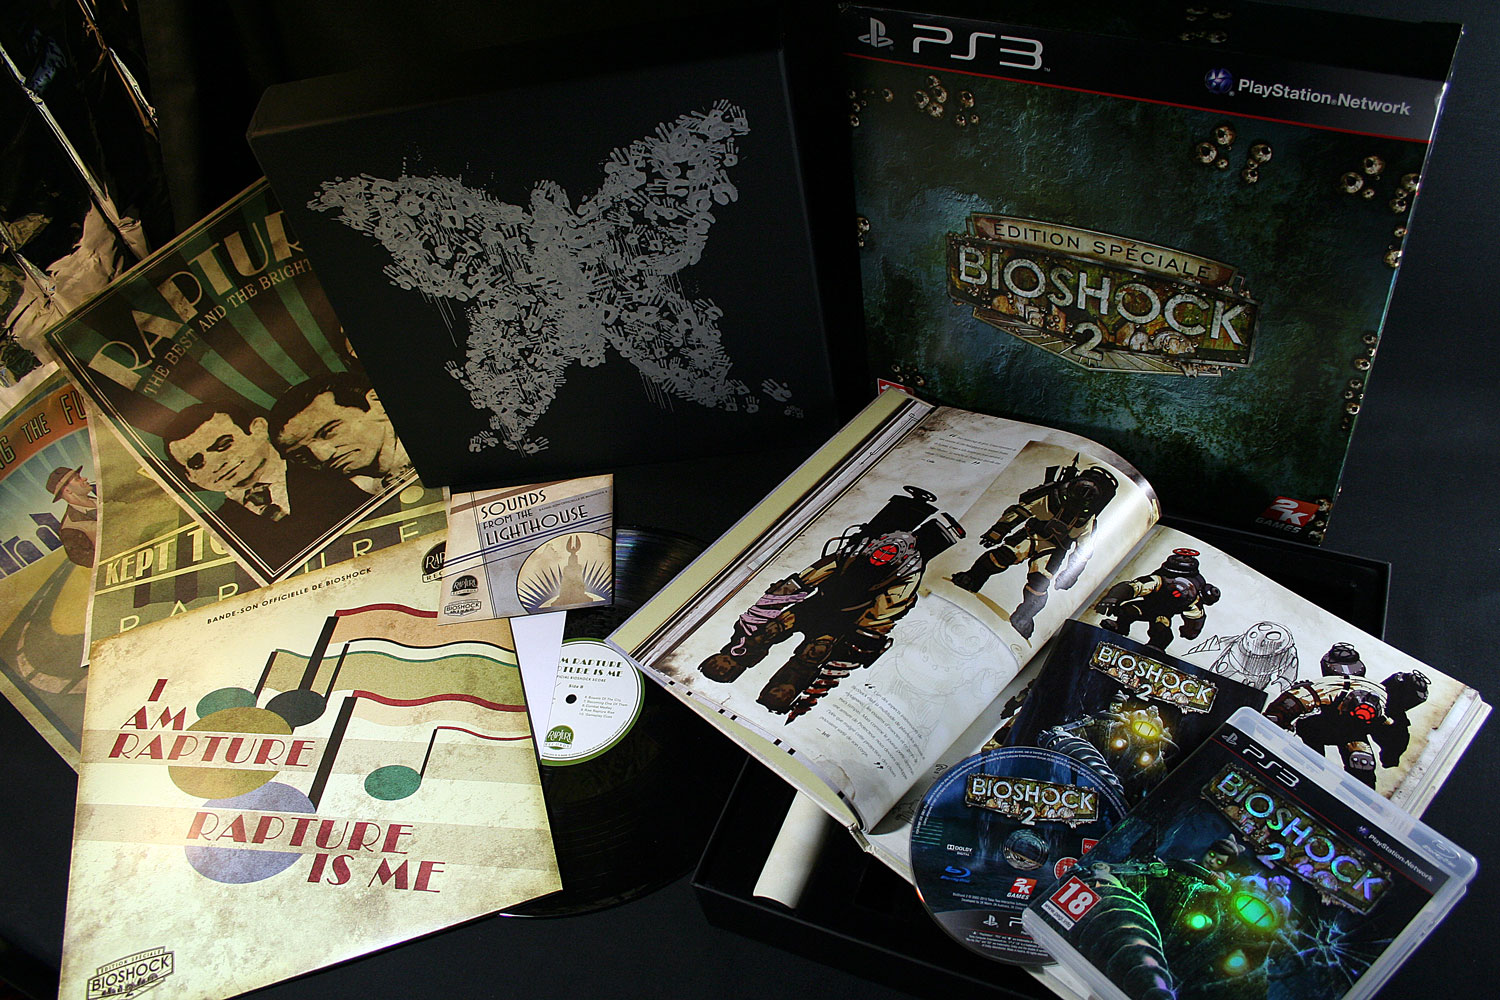 Bioschock 2 Collector Edition (PS3)